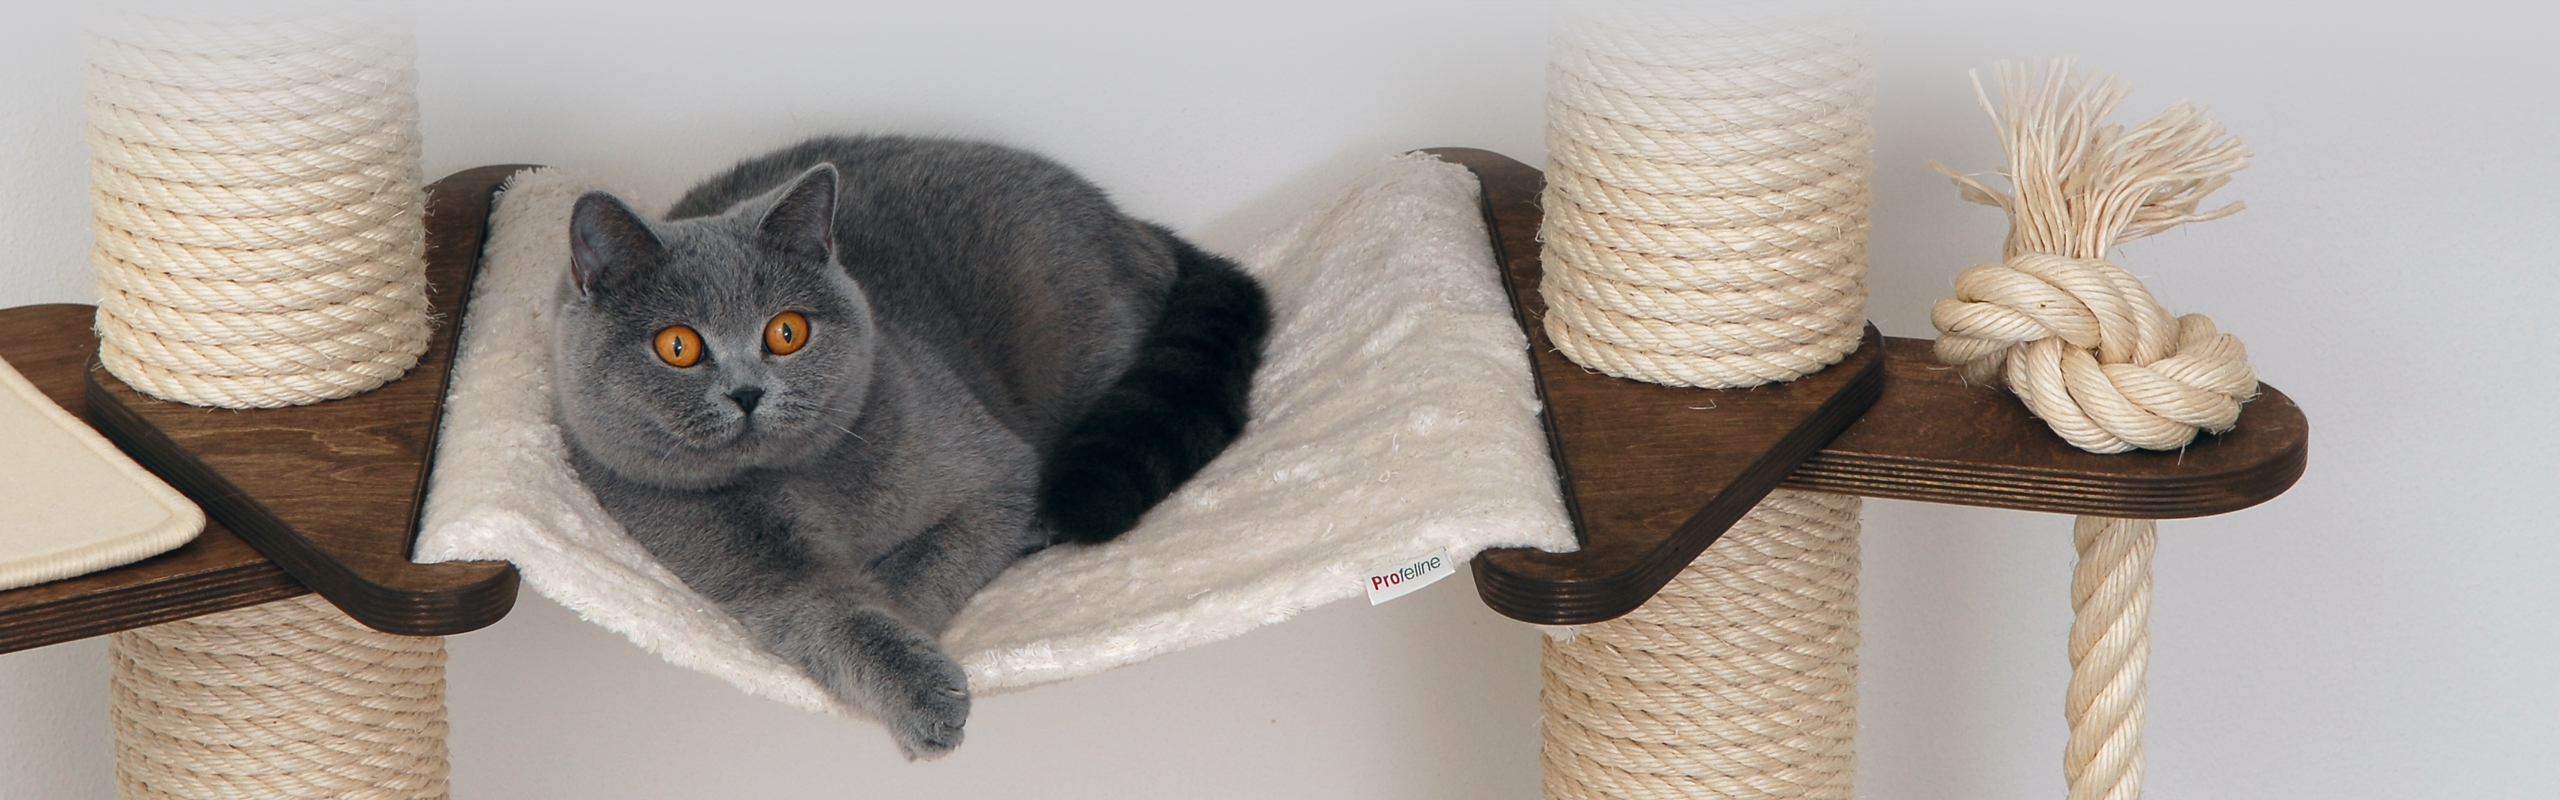 profeline cat trees scratching posts and cat supplies. Black Bedroom Furniture Sets. Home Design Ideas